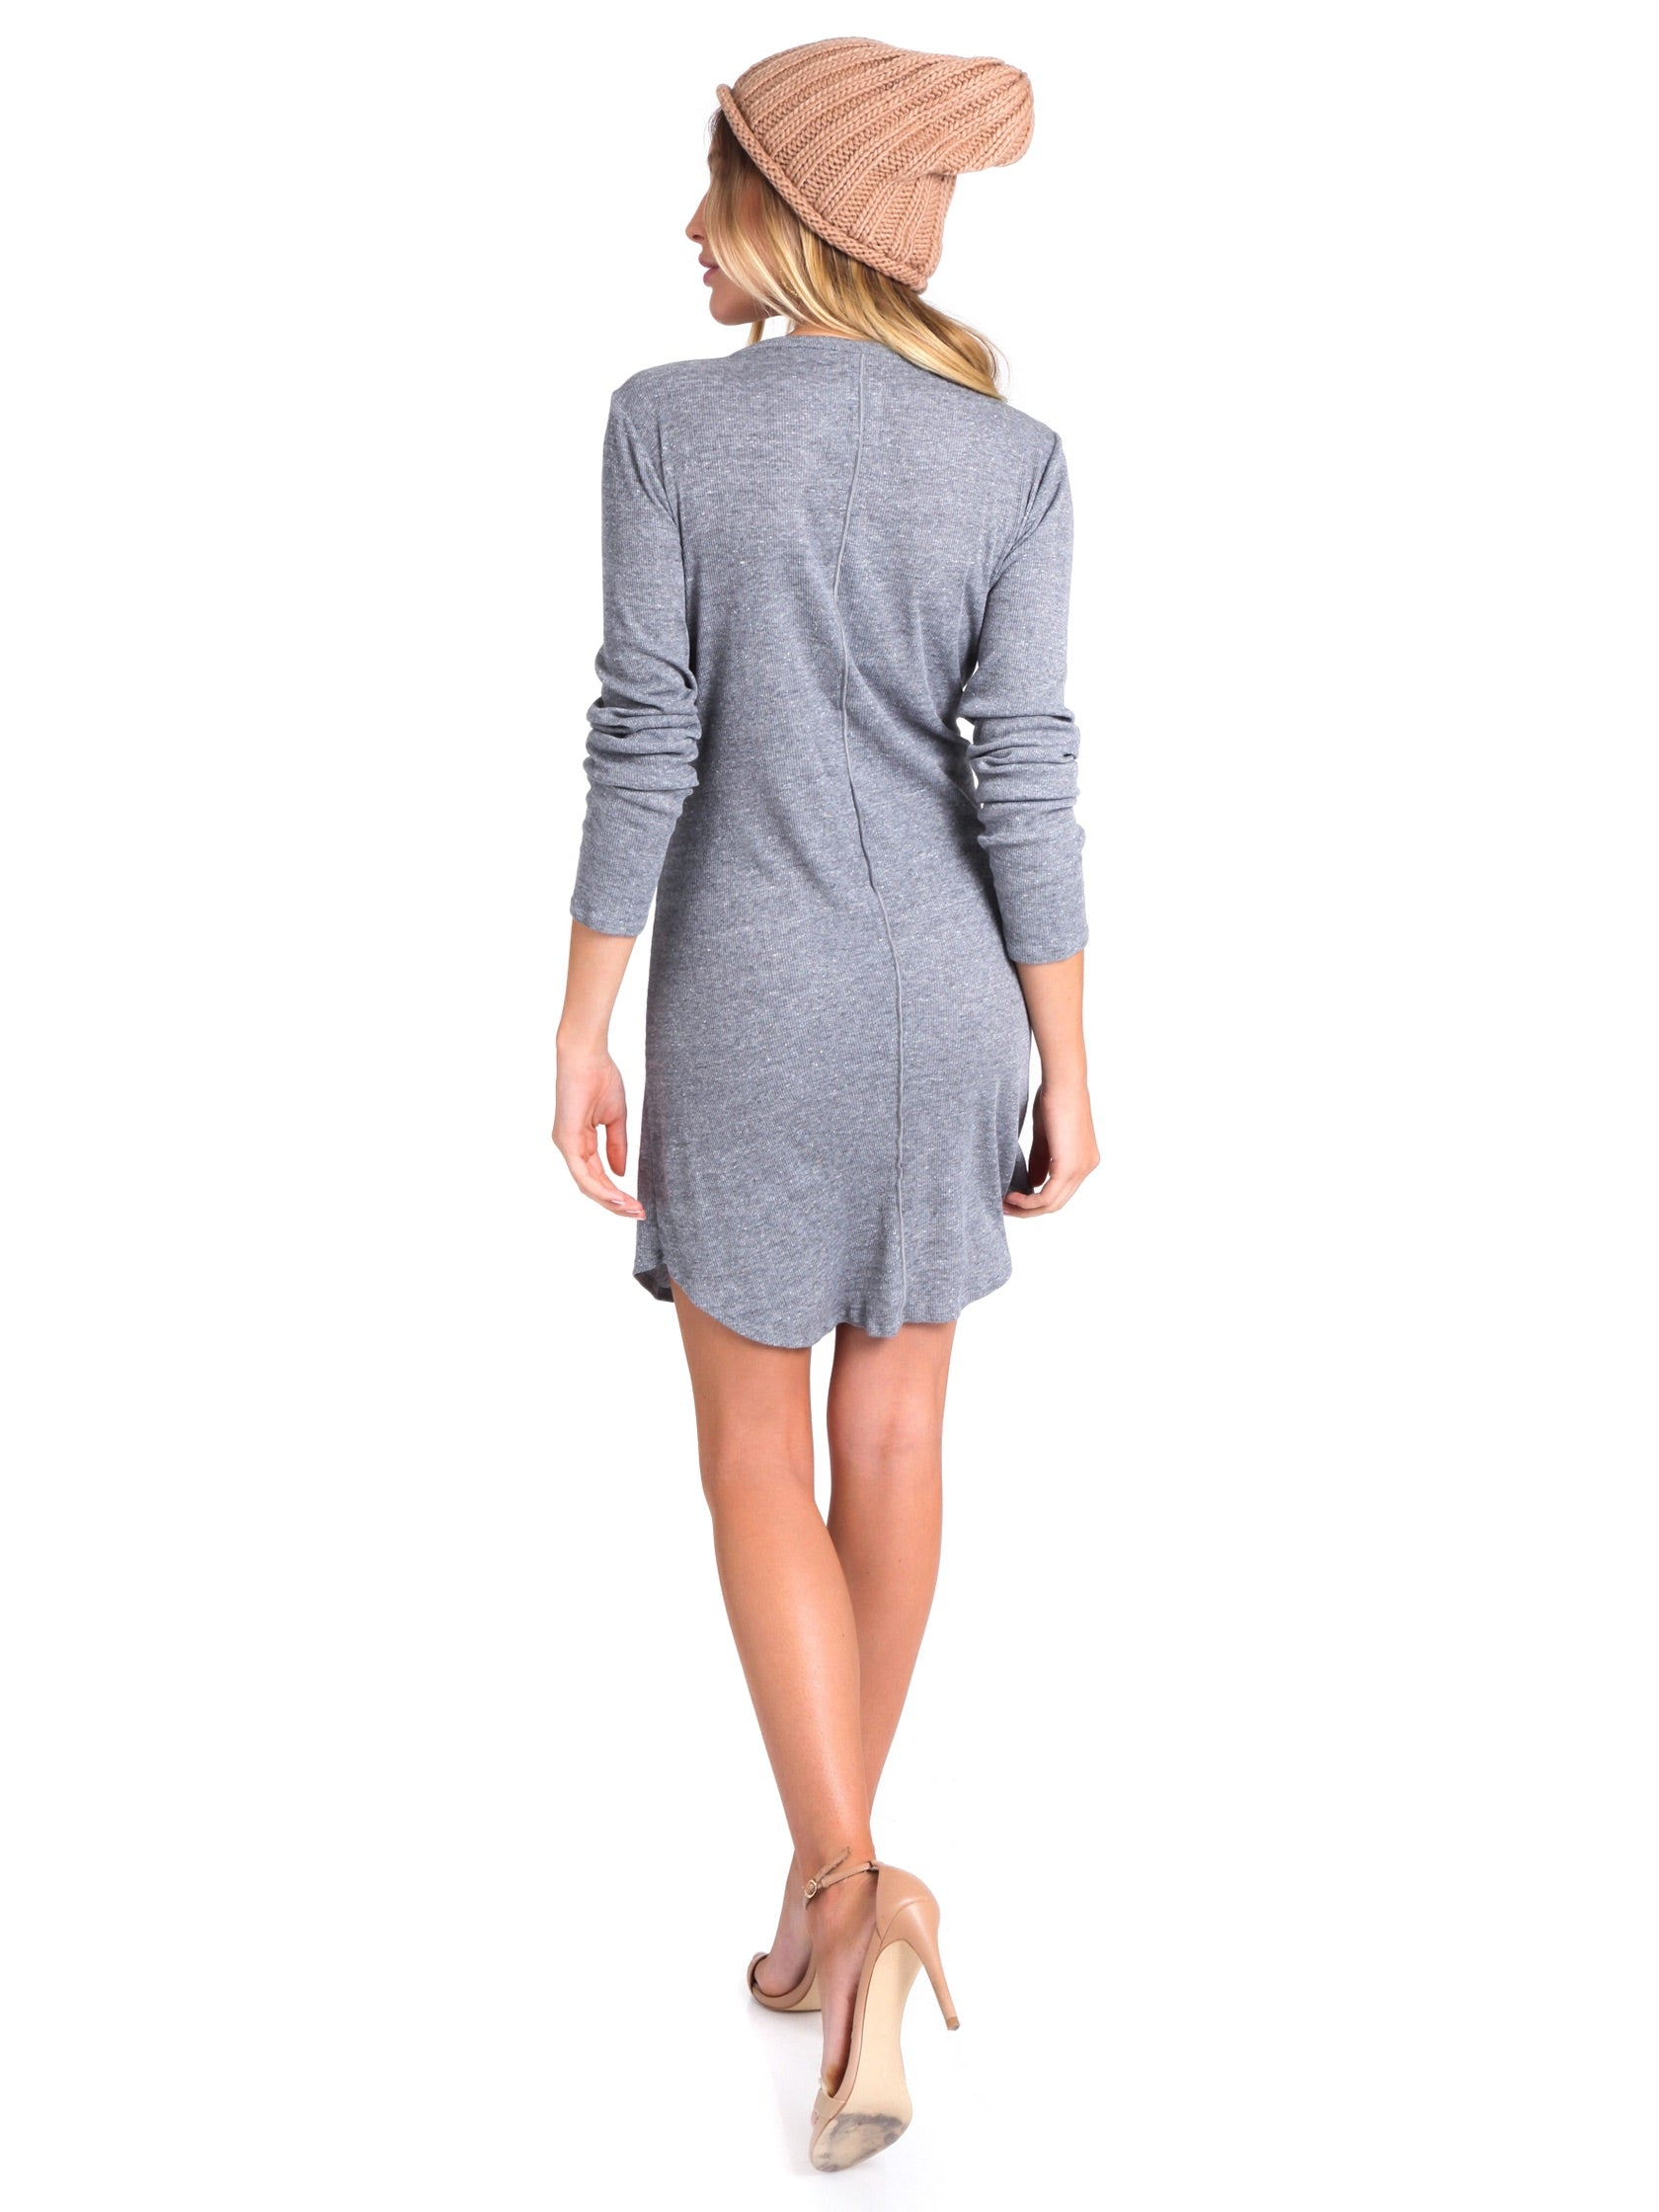 Women wearing a dress rental from Chaser called Rib Henley Shirttail Dress